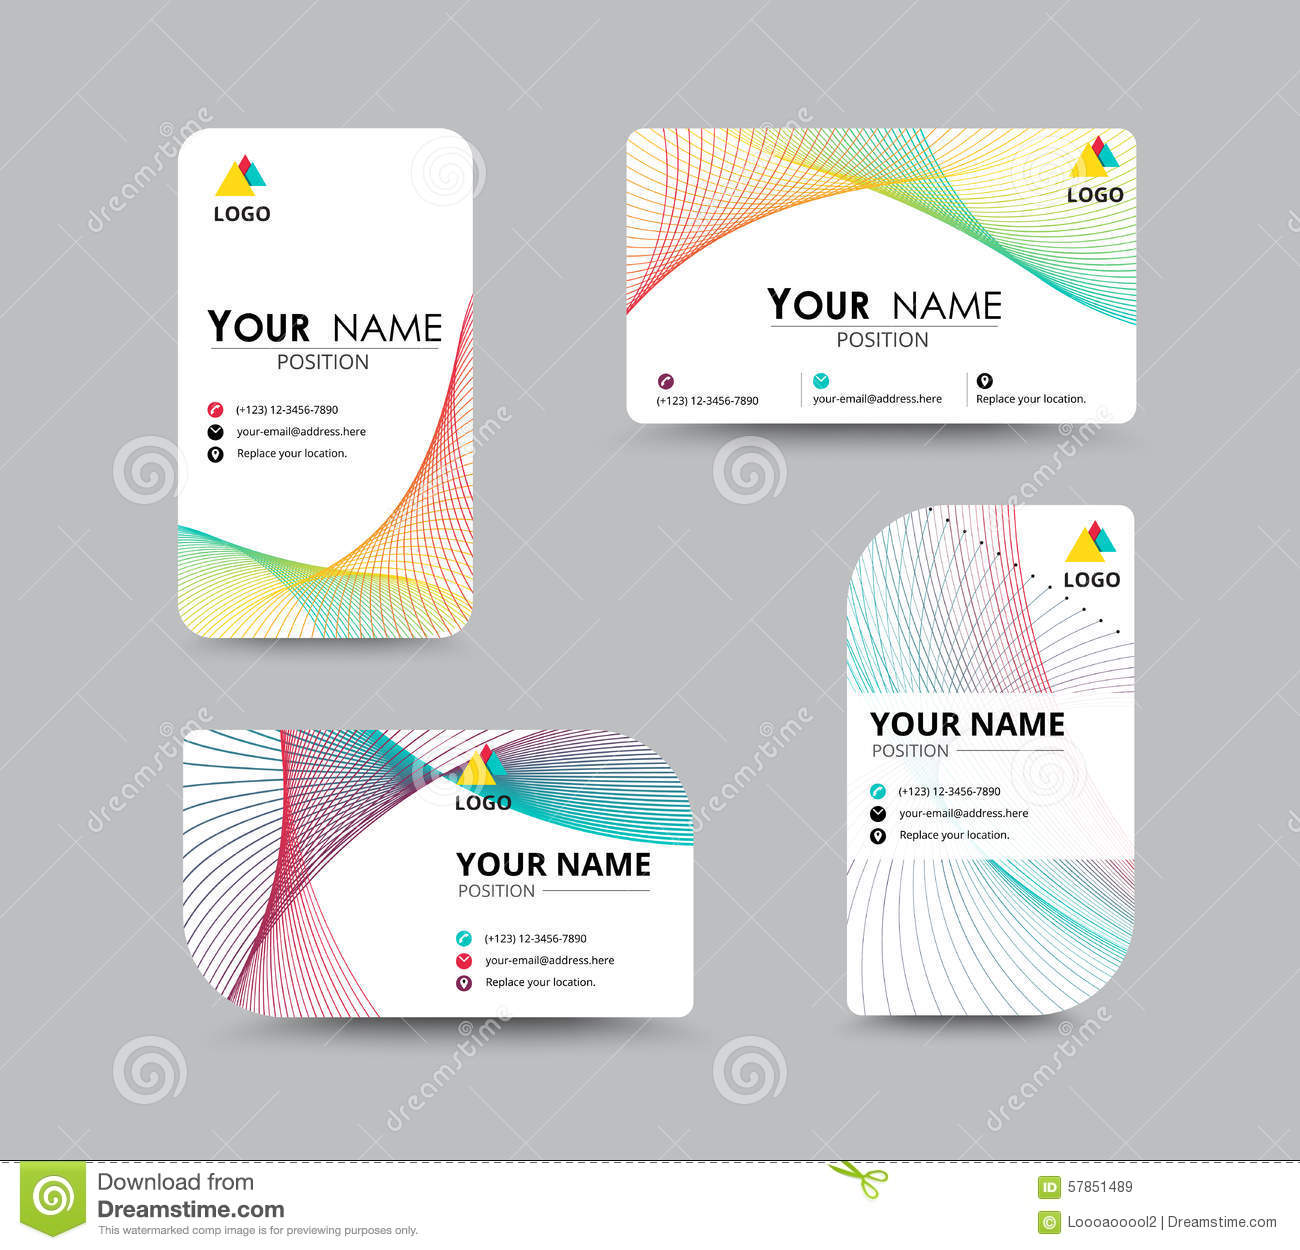 Business Contact Card Template Design. Contrast Color ...